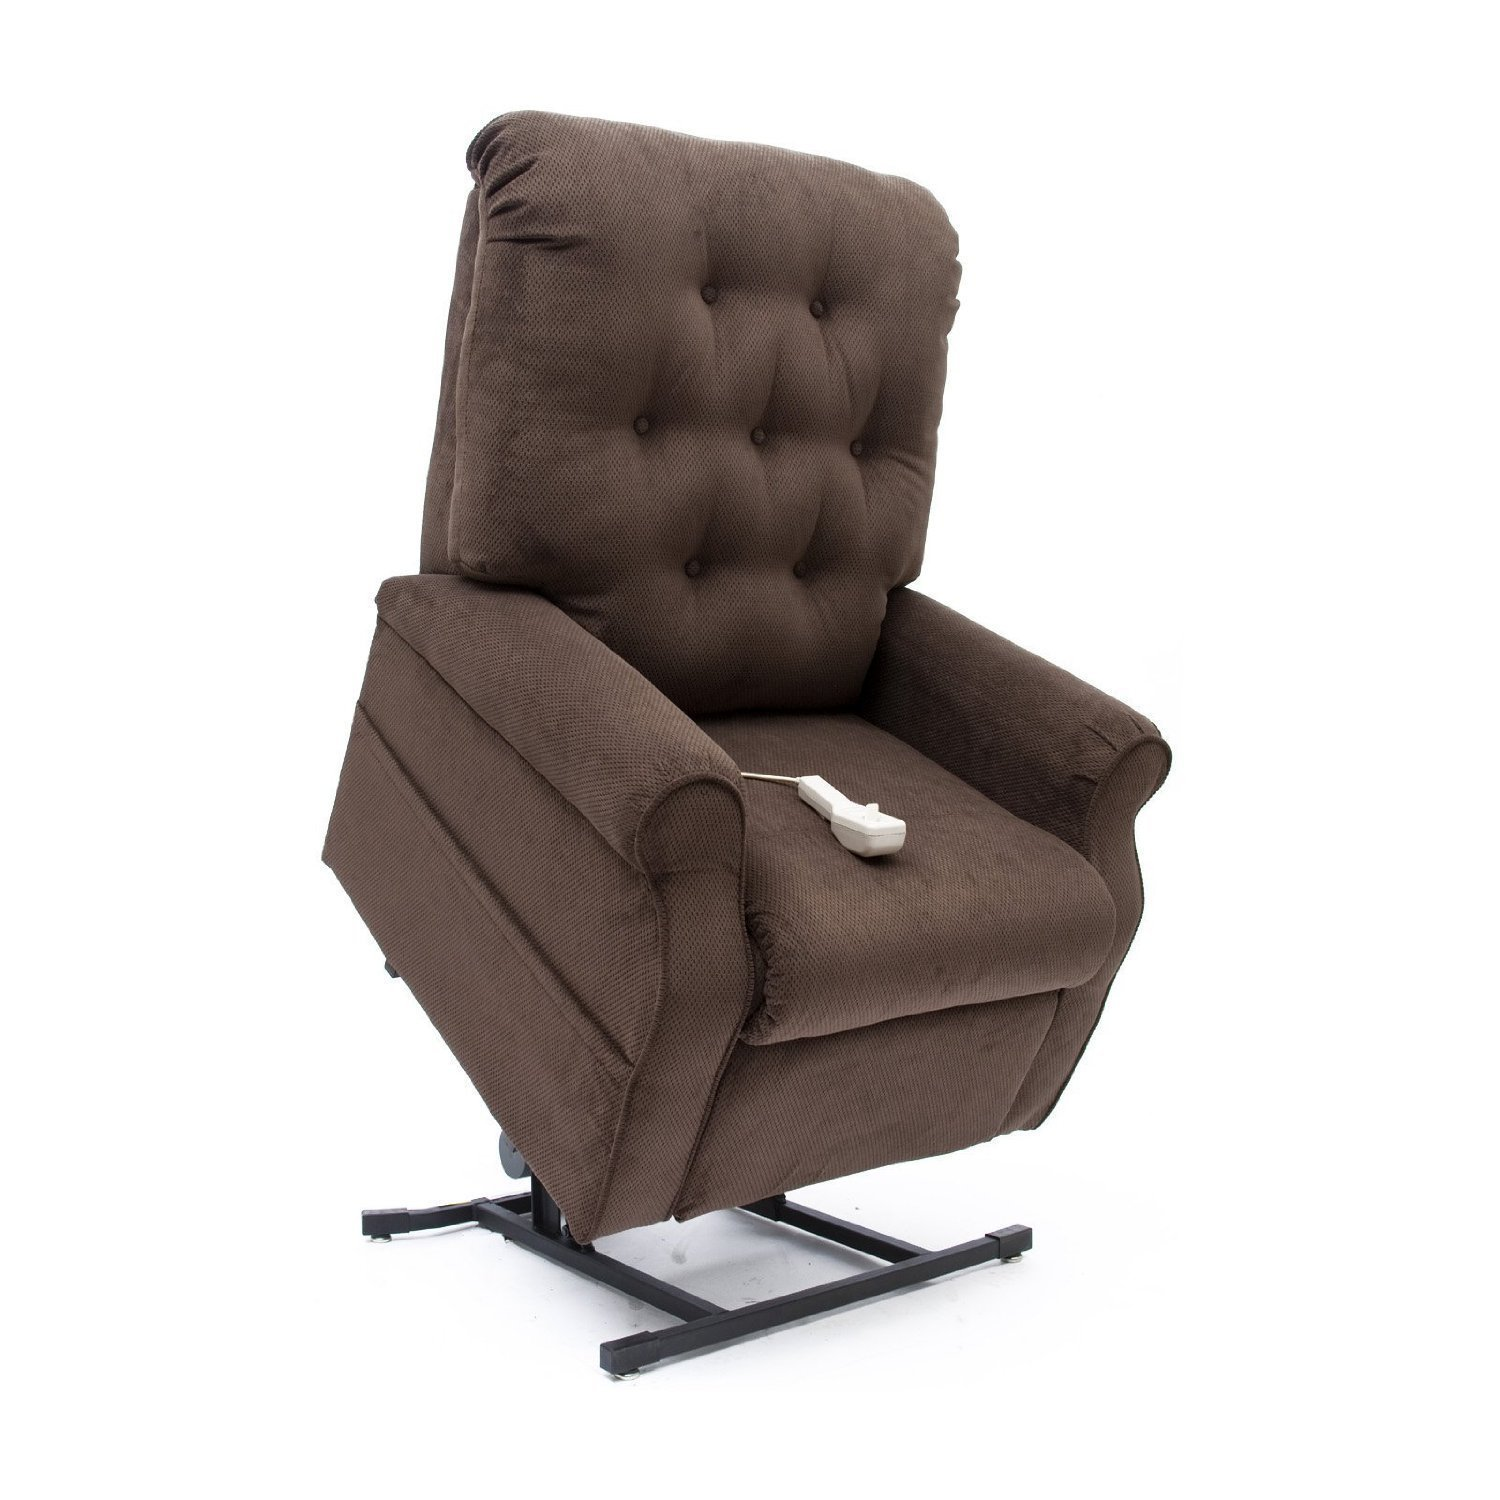 Easy Comfort Lift Chair Easy Comfort